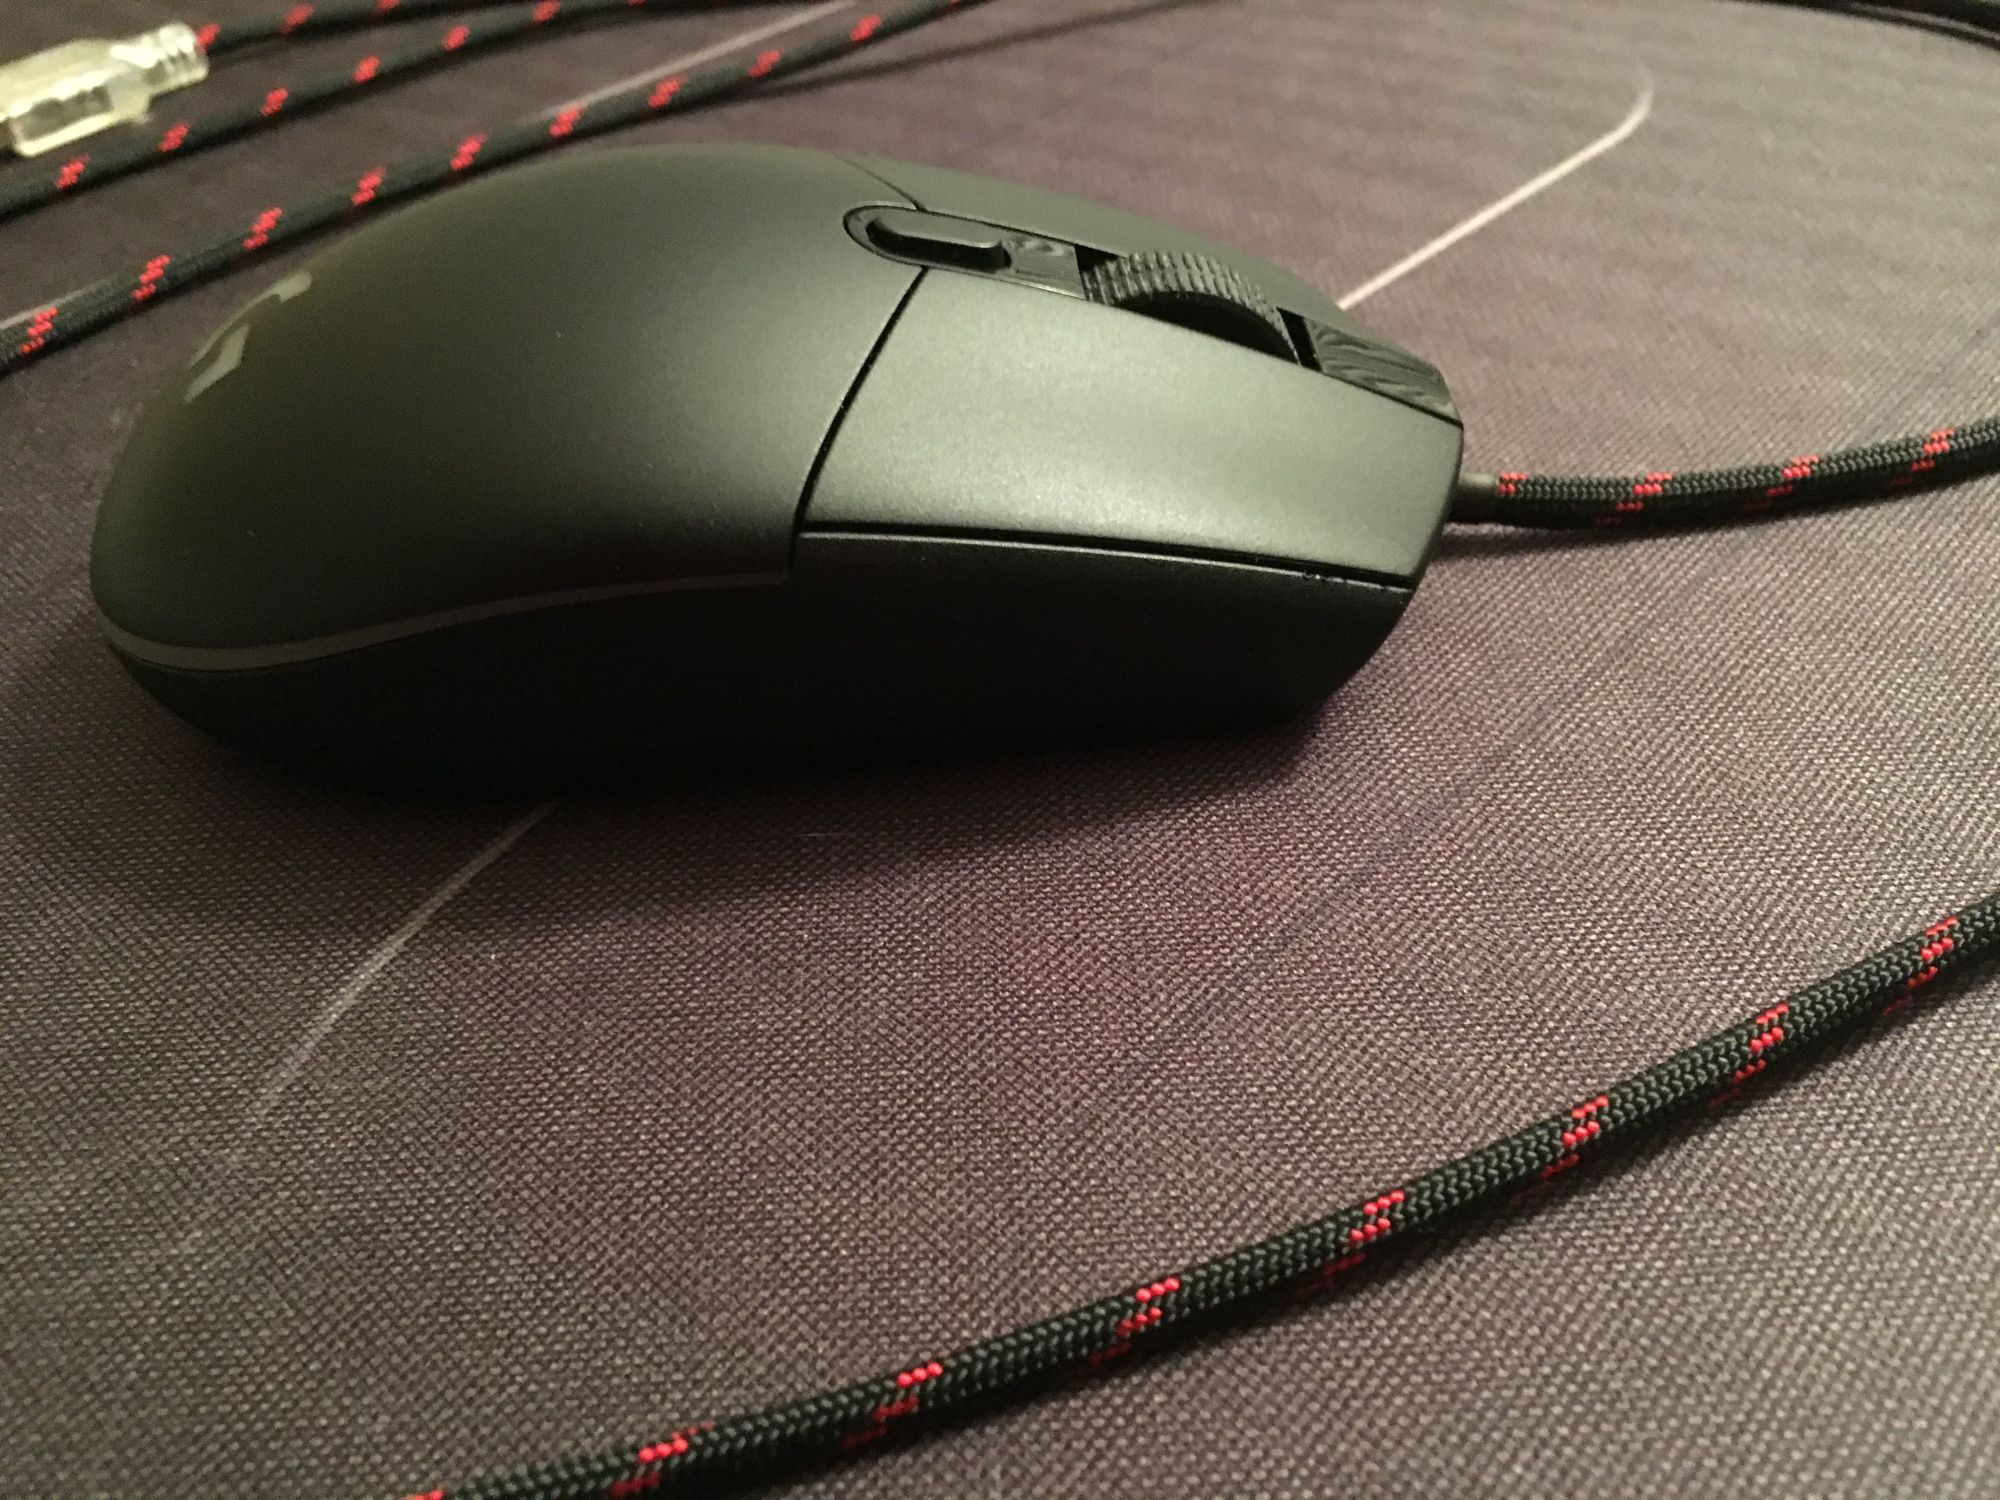 hight resolution of the differencce the cord makes when flexible and light weight gives the same effect of mouse bungee for me